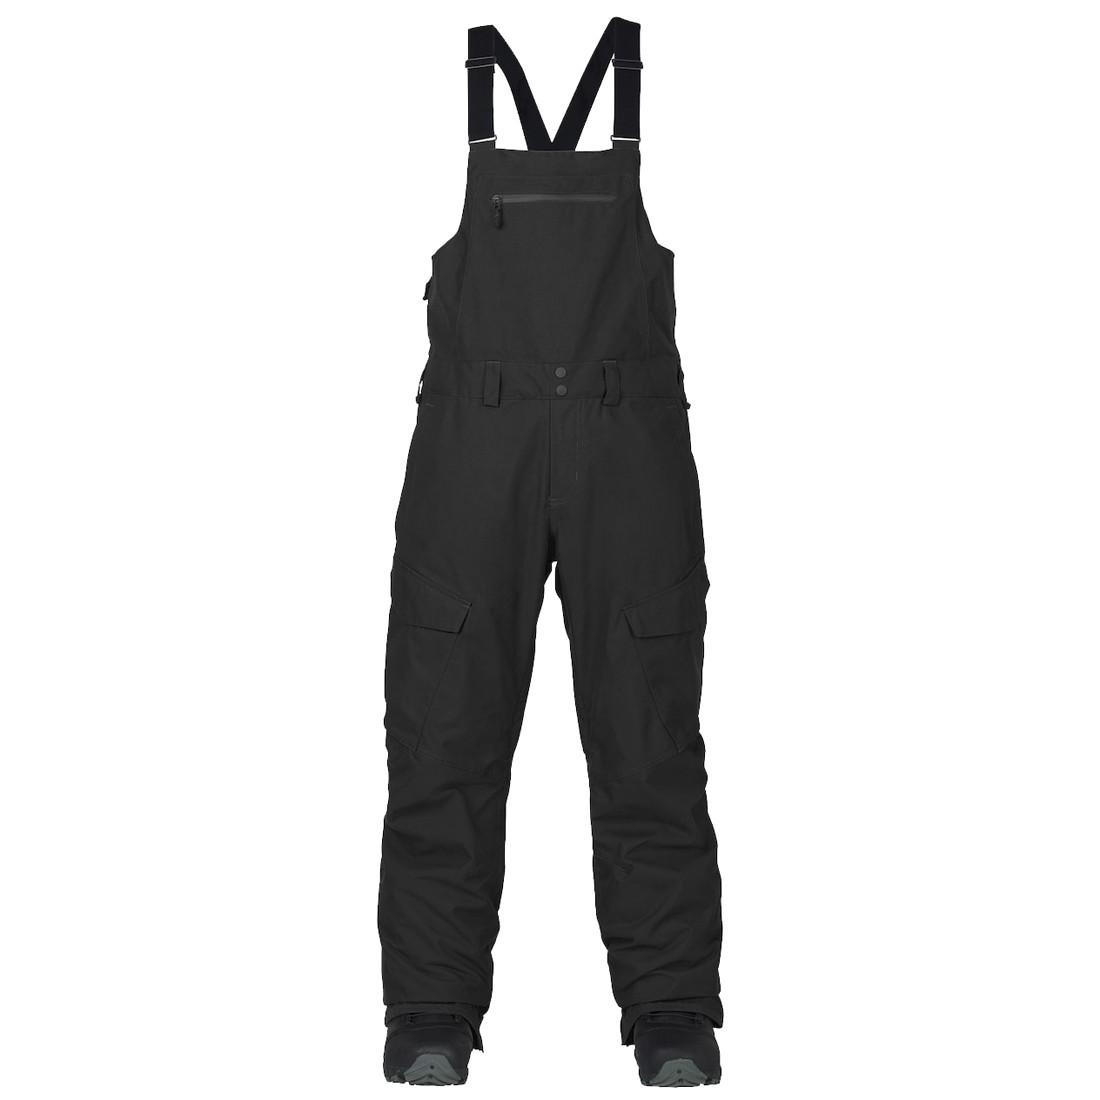 Burton Штаны для сноуборда Burton Reserve Bib Pant TRUE BLACK, , , FW18 S burton термобелье burton midweight base layer pant true black fw18 xl